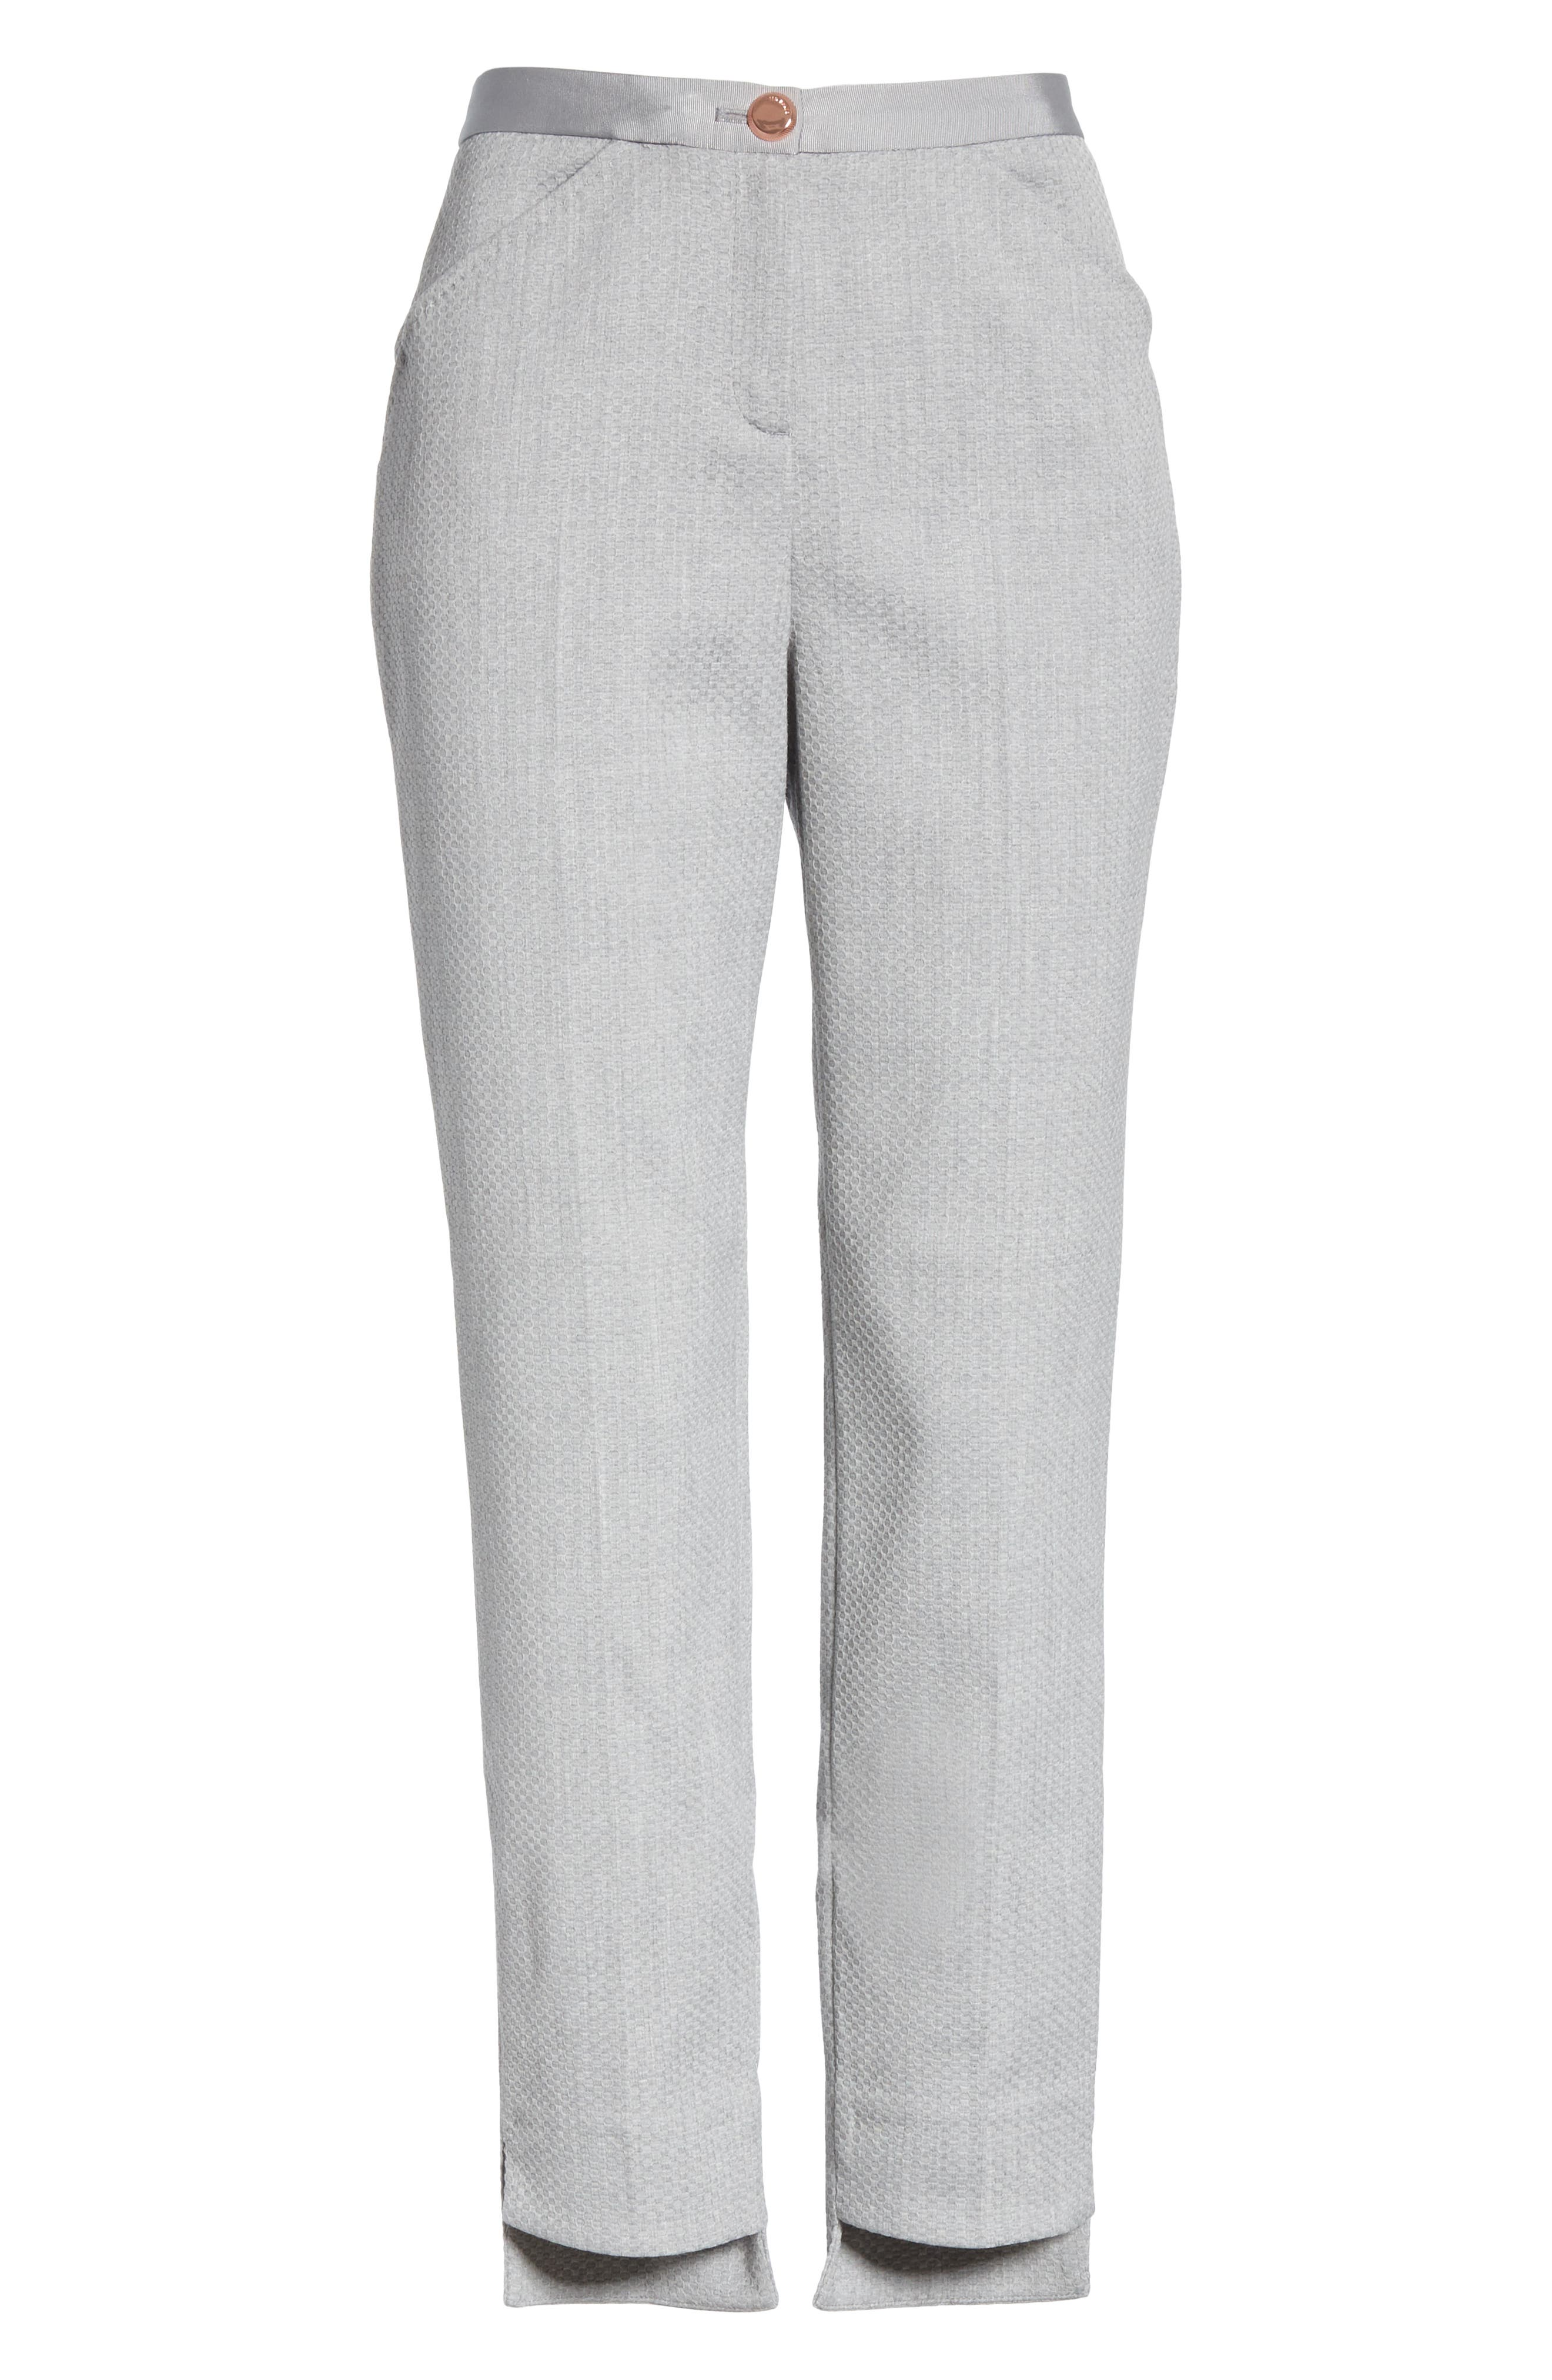 Ted Working Title Daizit Skinny Crop Pants,                             Alternate thumbnail 6, color,                             GREY